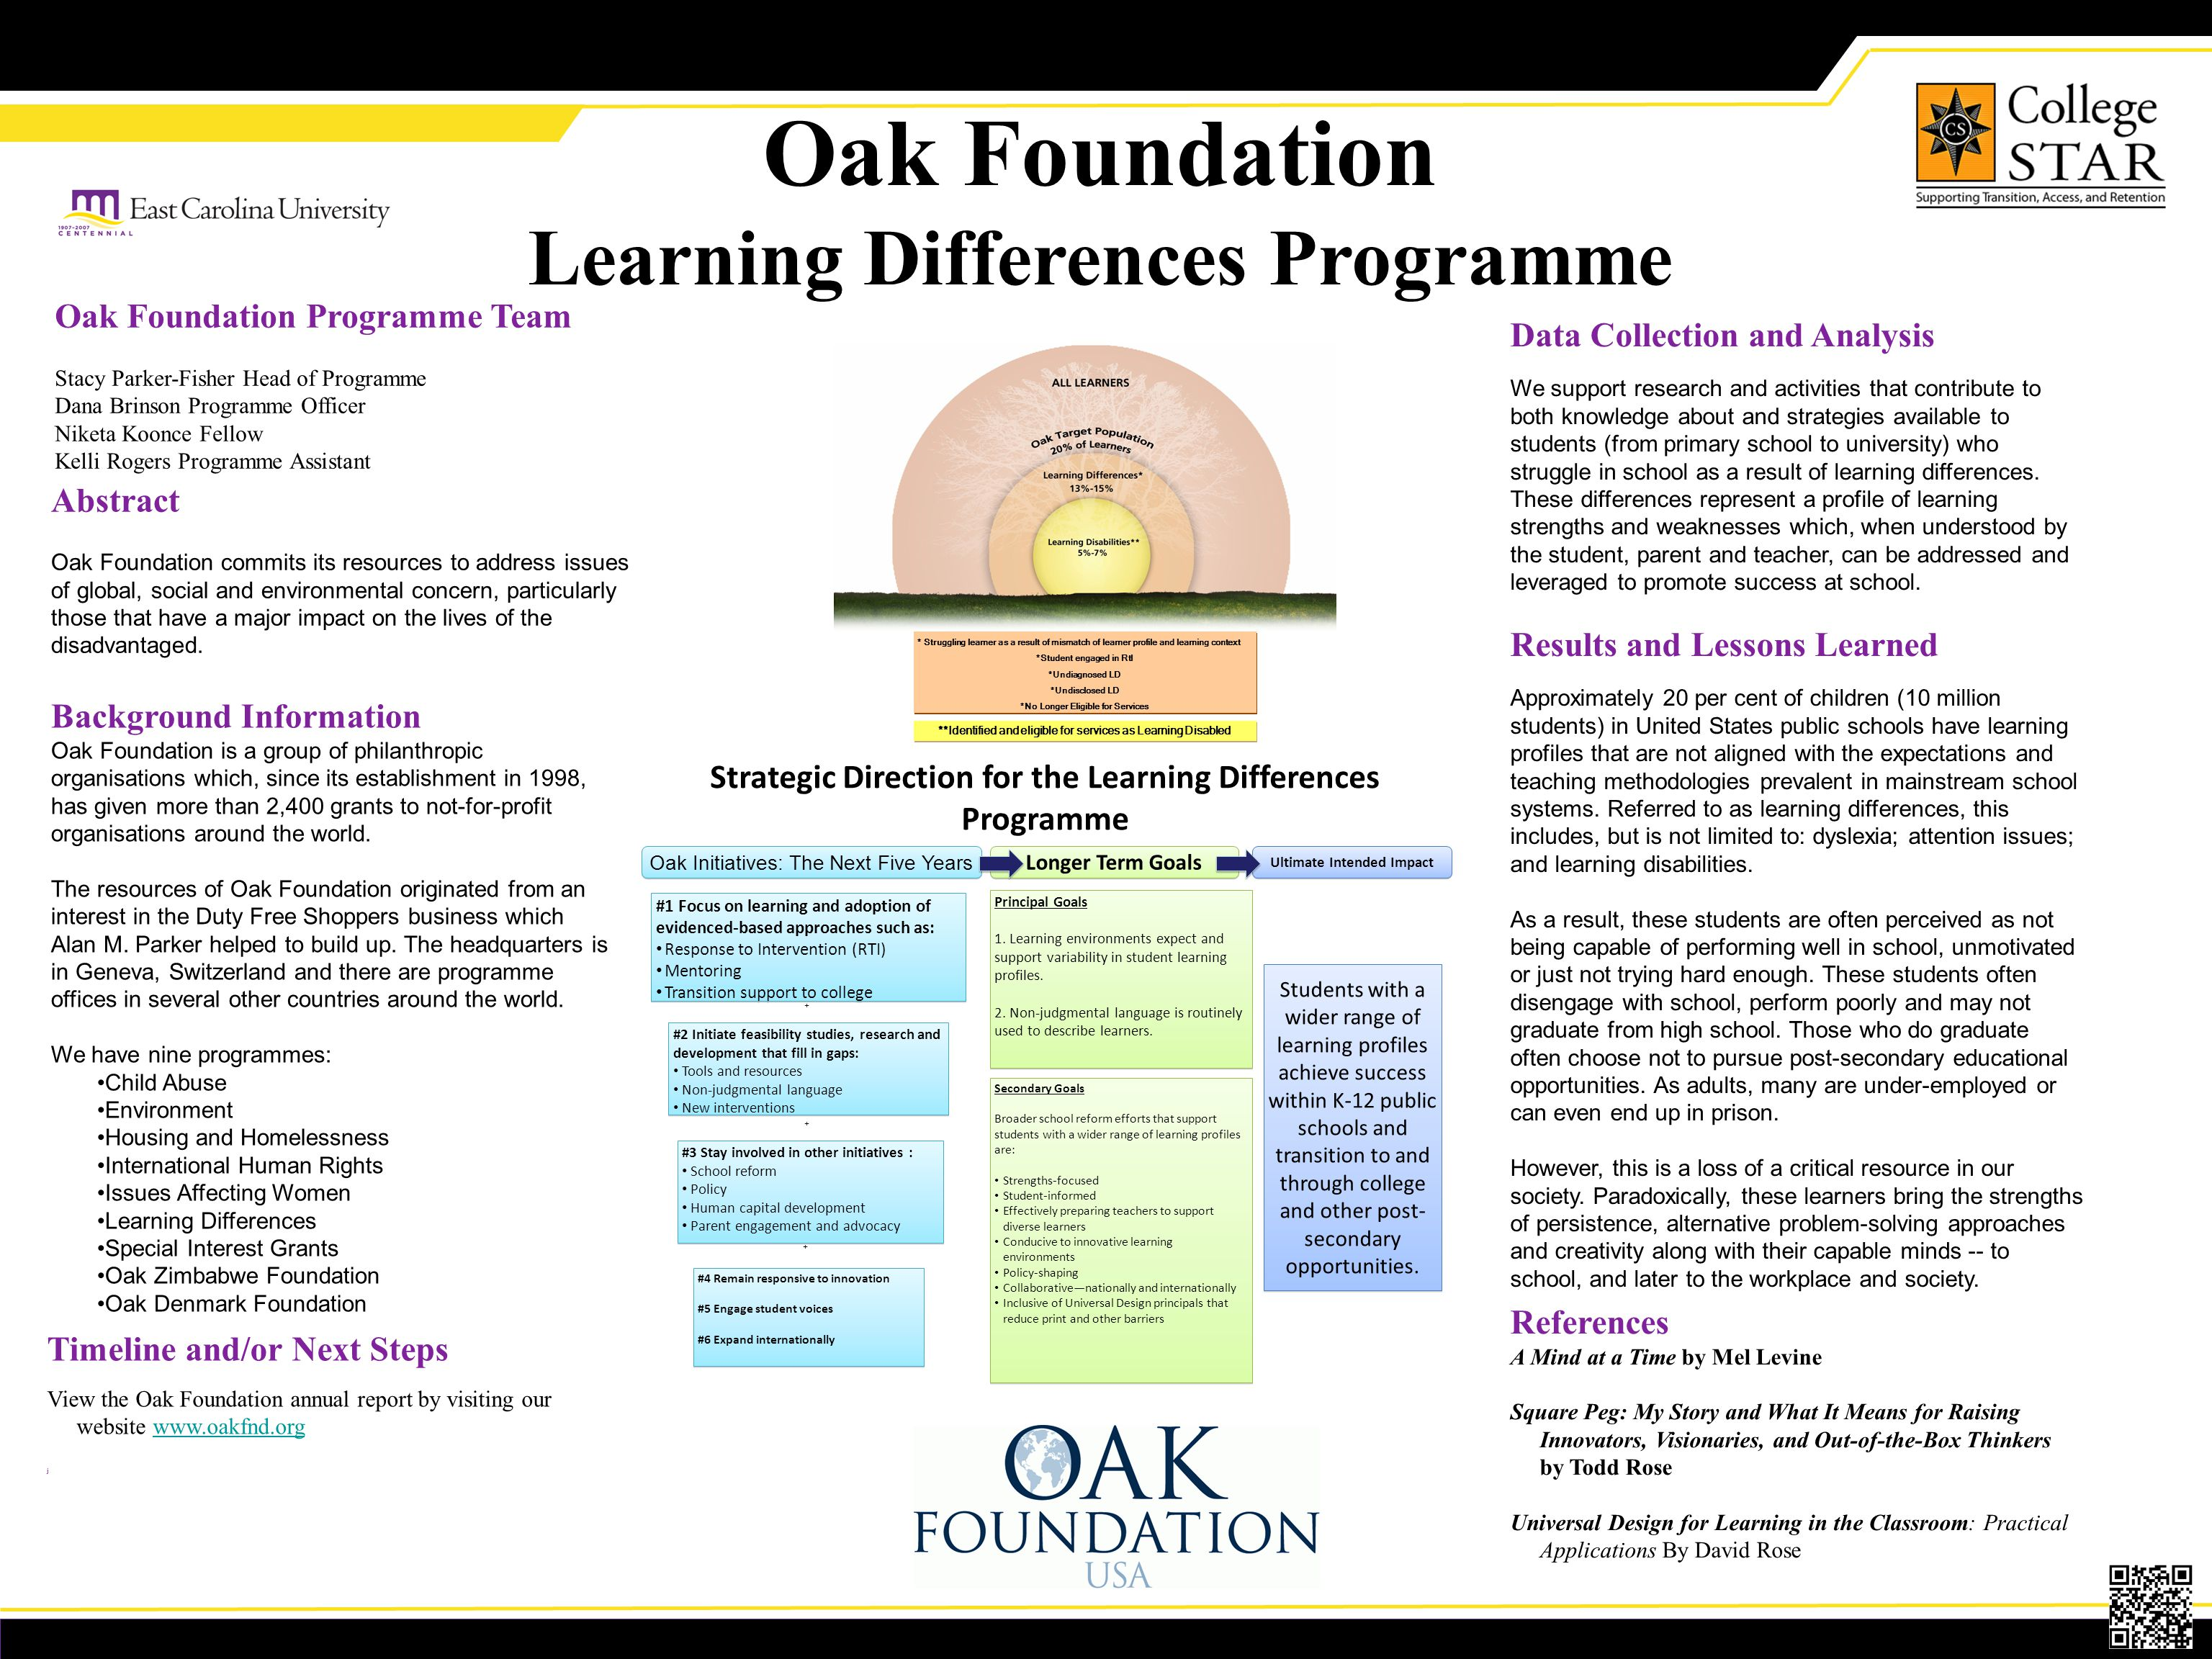 Oak Foundation Learning Differences Programme Abstract Oak Foundation commits its resources to address issues of global, social and environmental concern, particularly those that have a major impact on the lives of the disadvantaged.